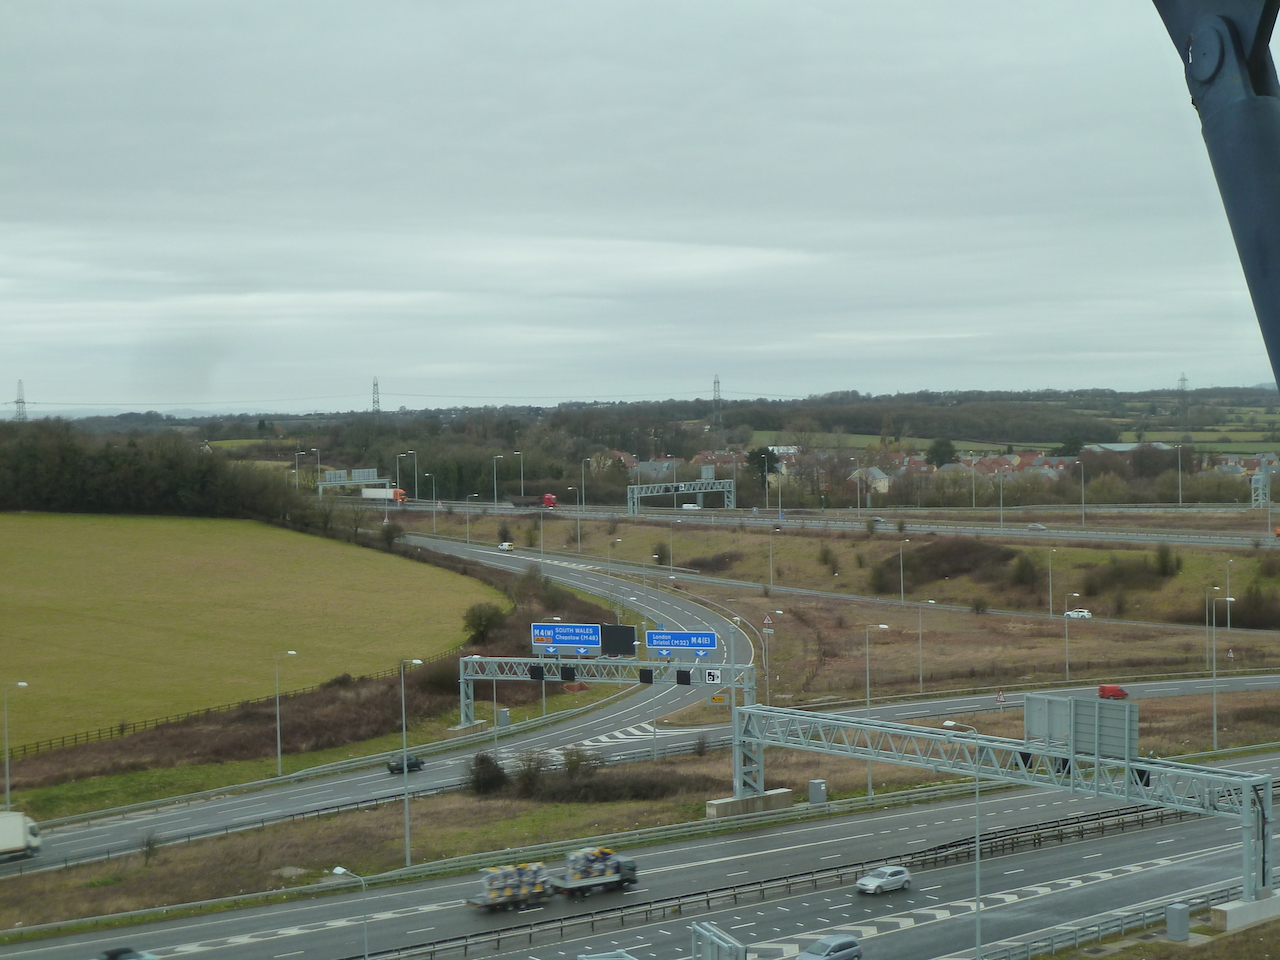 Looking north-west from the RAC building, from the Central Viewing Room, 30 metres or nearly 100 feet above ground level, there's a good view of the M5/M4 junction.